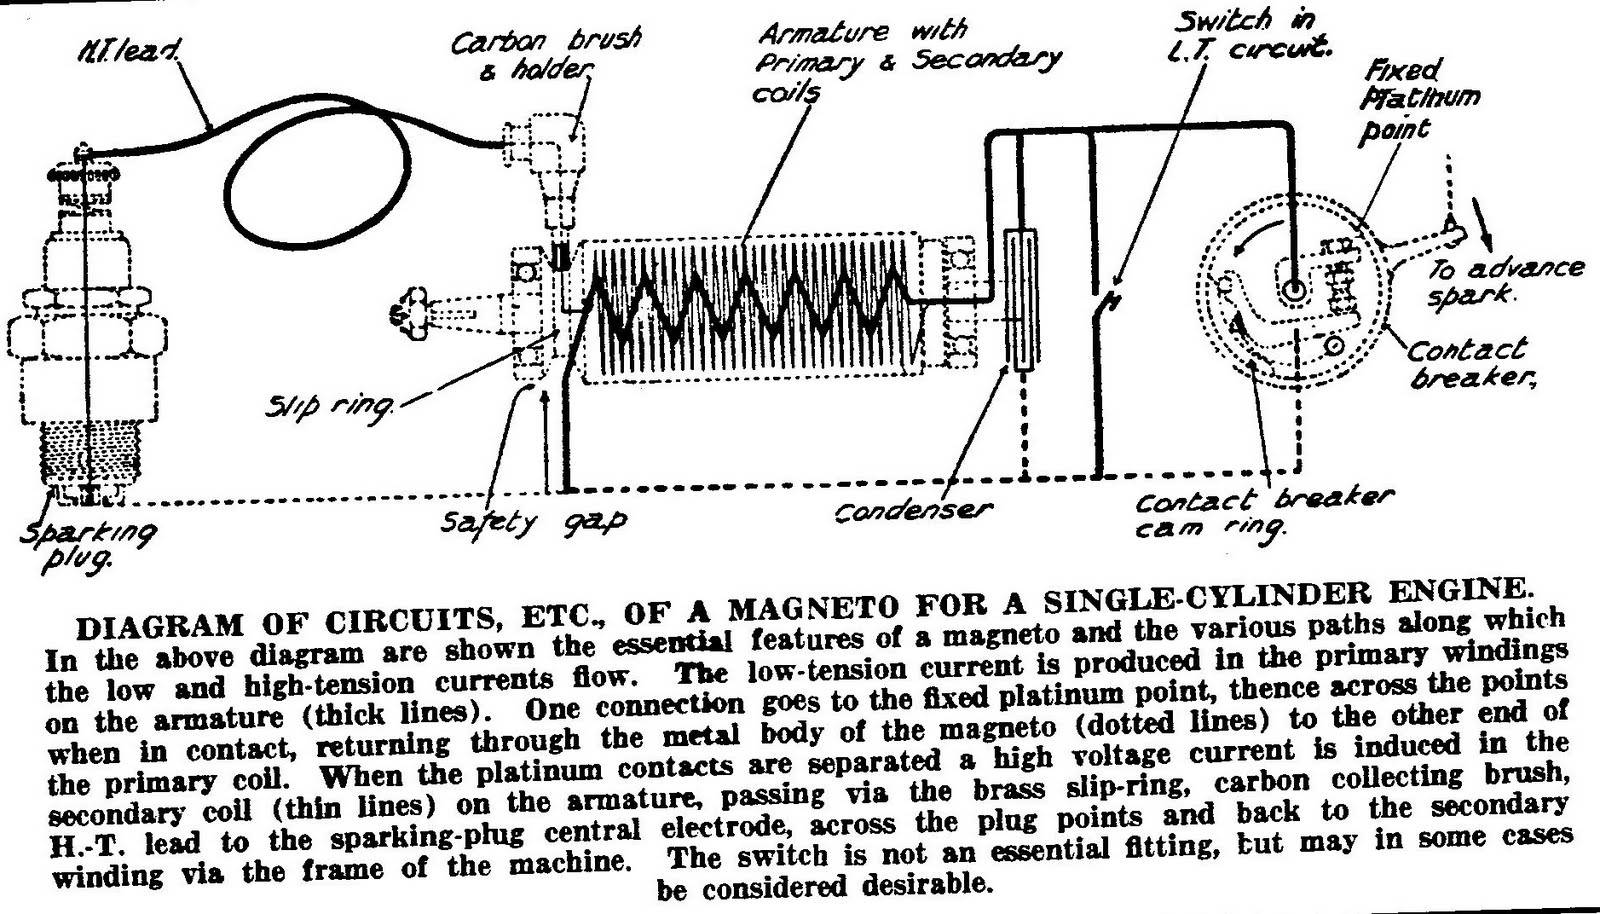 hight resolution of magneto wiring 25cc schematic wiring library john deere wiring schematic magneto wiring 25cc schematic